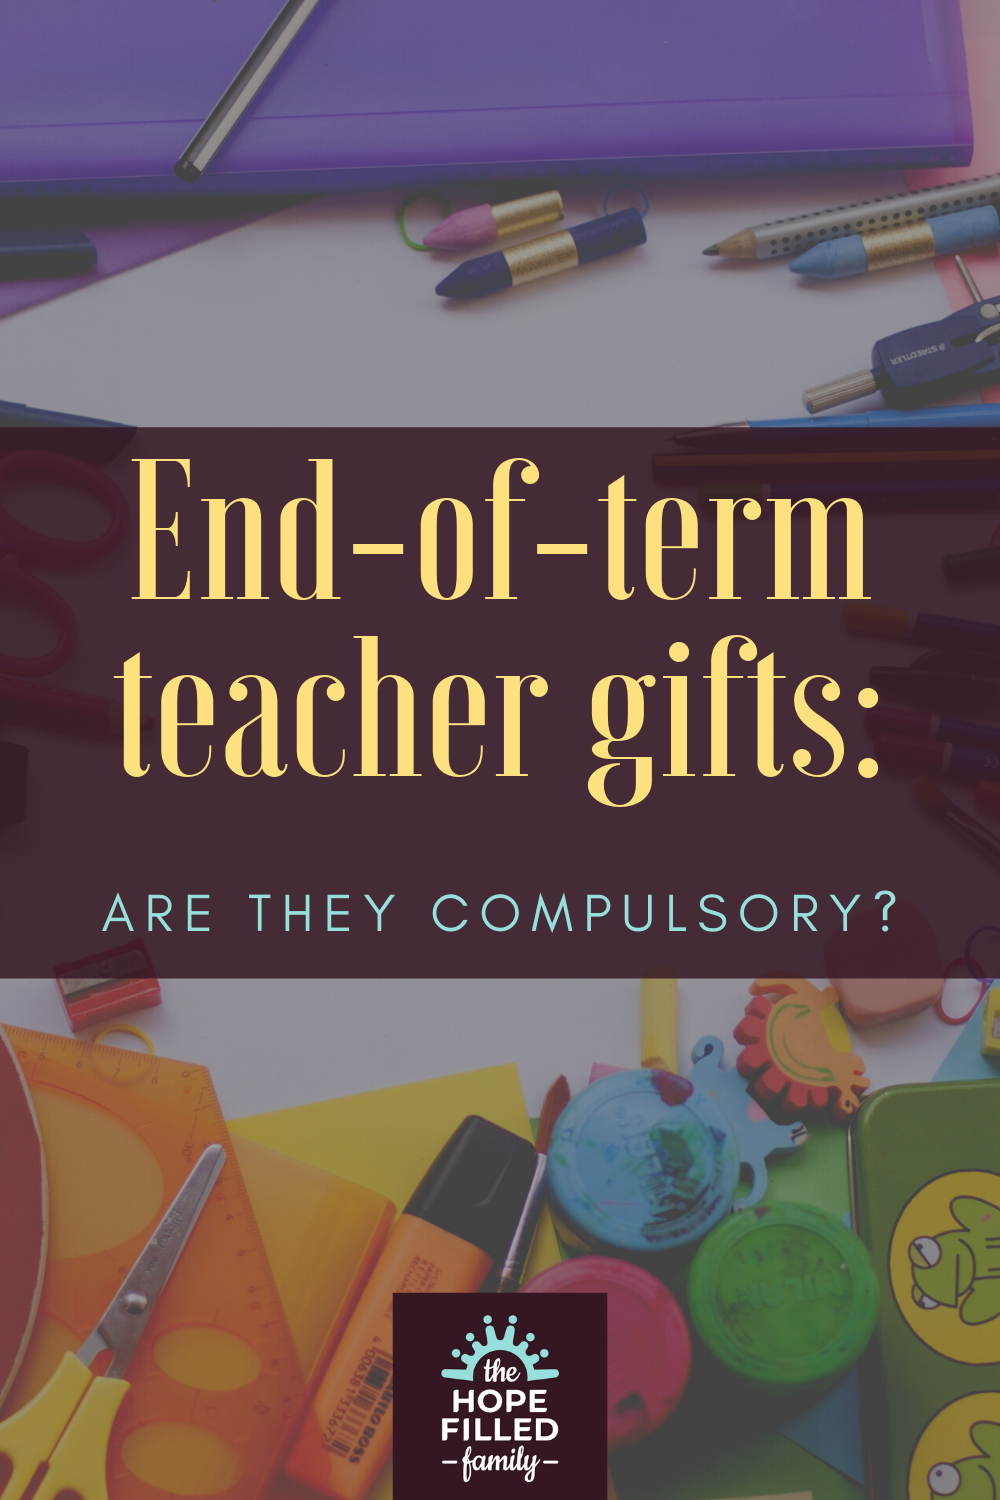 Do I have to buy my child's teachers an end-of-term gift?